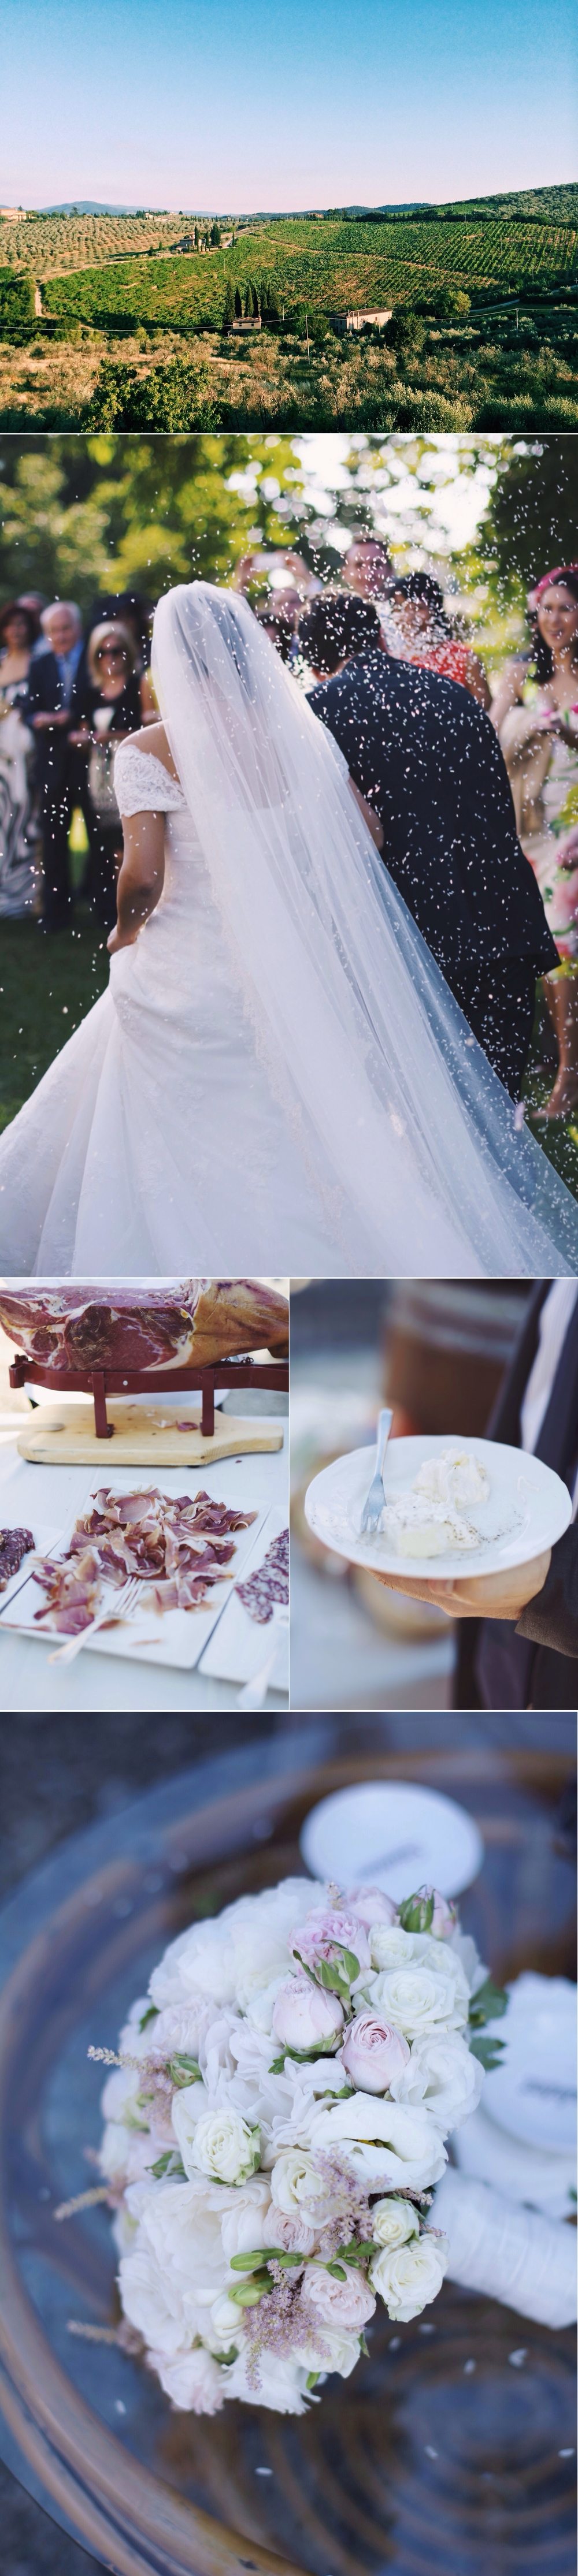 A Tuscan Wedding | Thyme & Honey